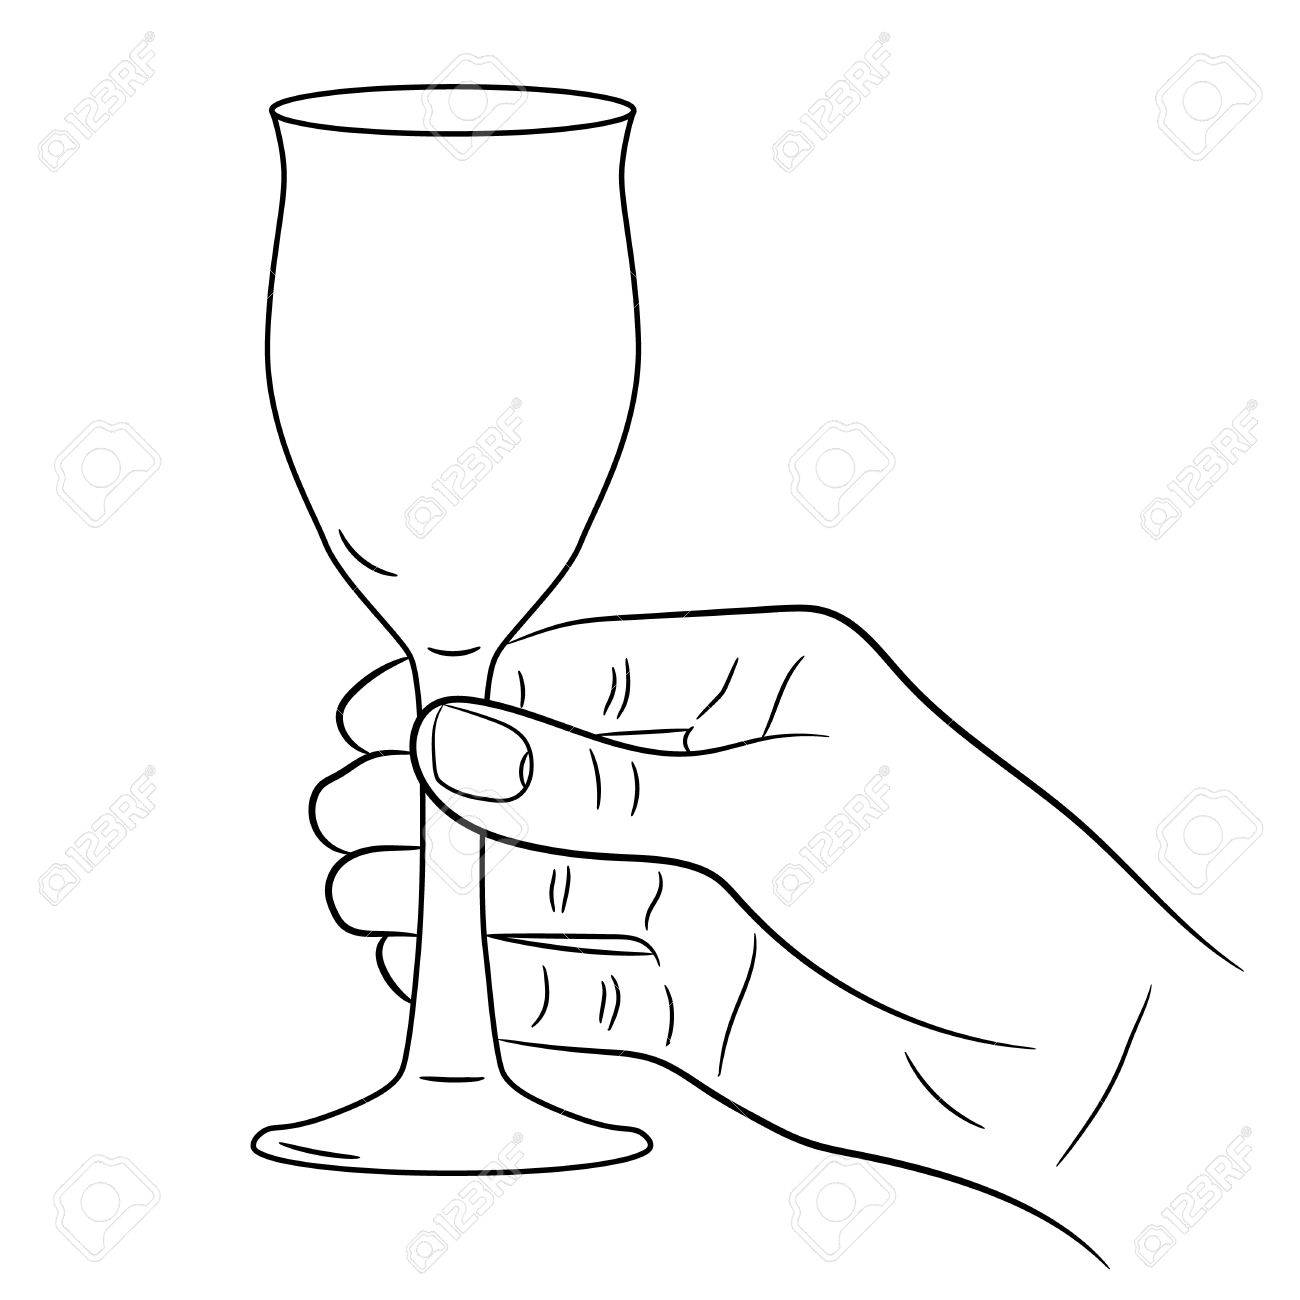 1300x1300 Hand Holding A Wine Glass On White Background Of Monochrome Vector